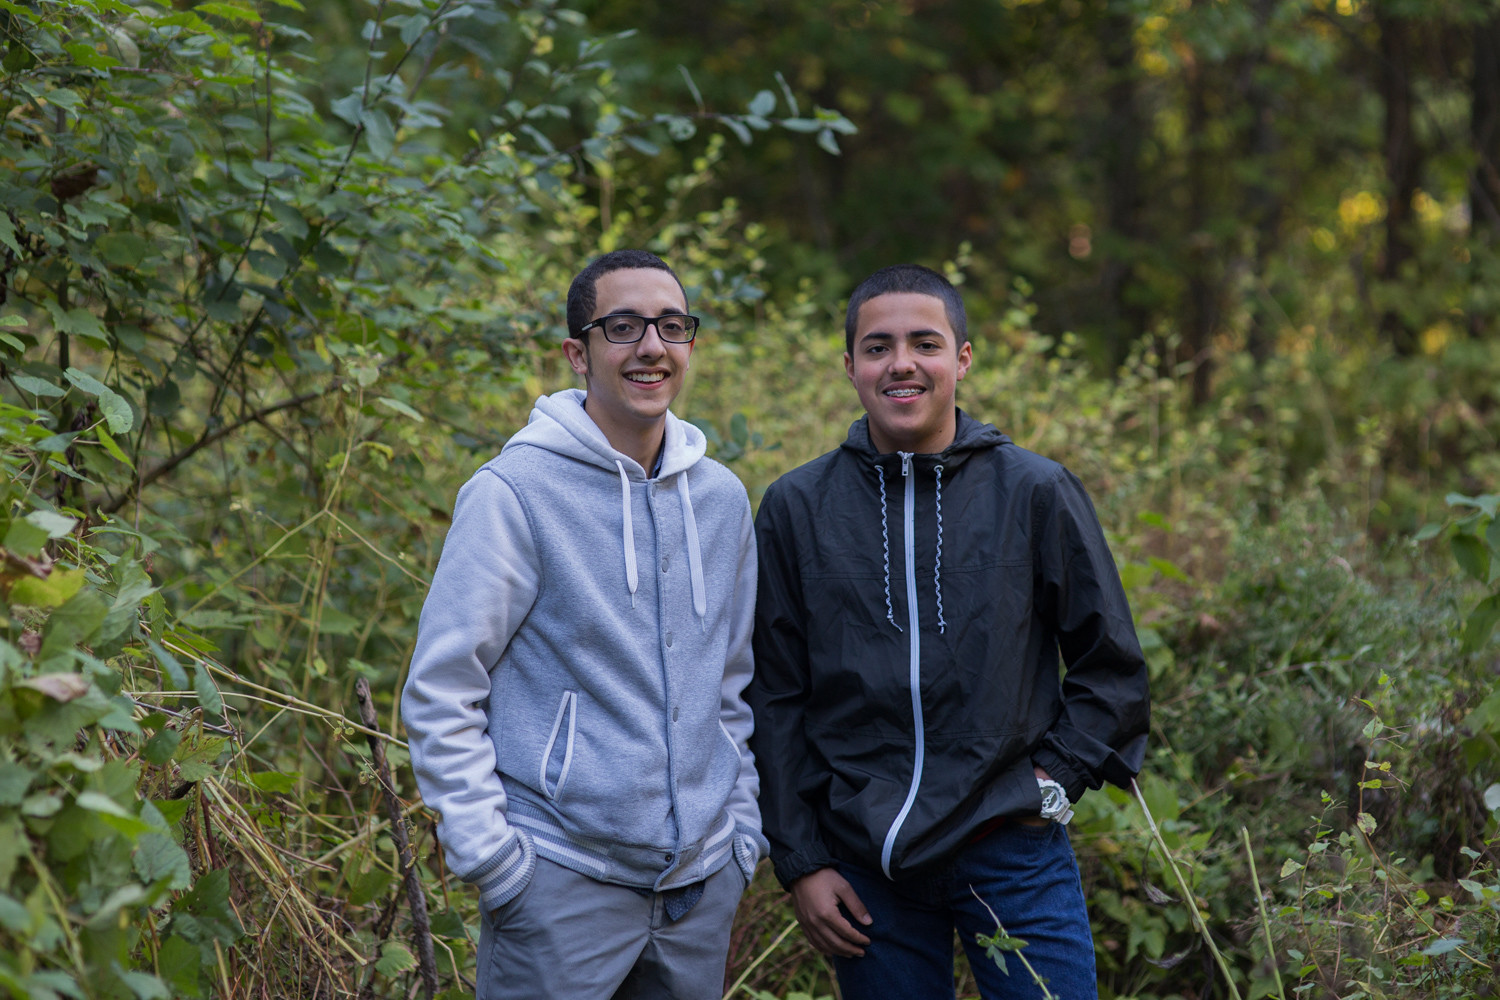 Brothers Enzo and Omar Ramirez from Kingsbridge were honored for their work as interns with Van Cortlandt Park.